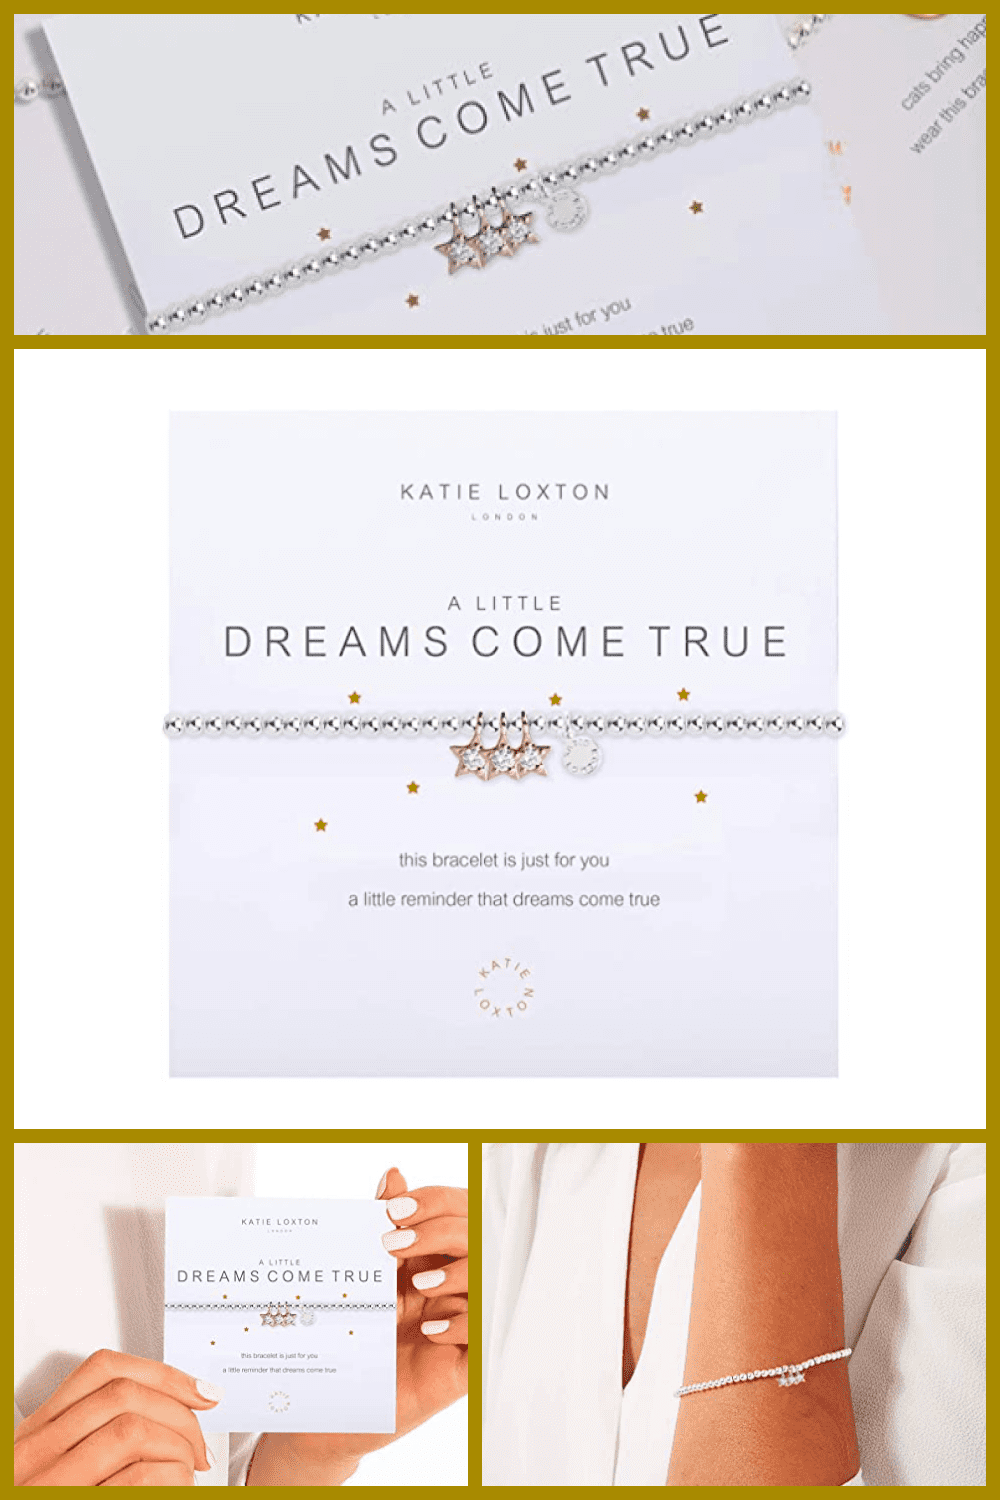 Girly paper reminder. It consists of a gold font and cute stones, which are made to look like precious ones.